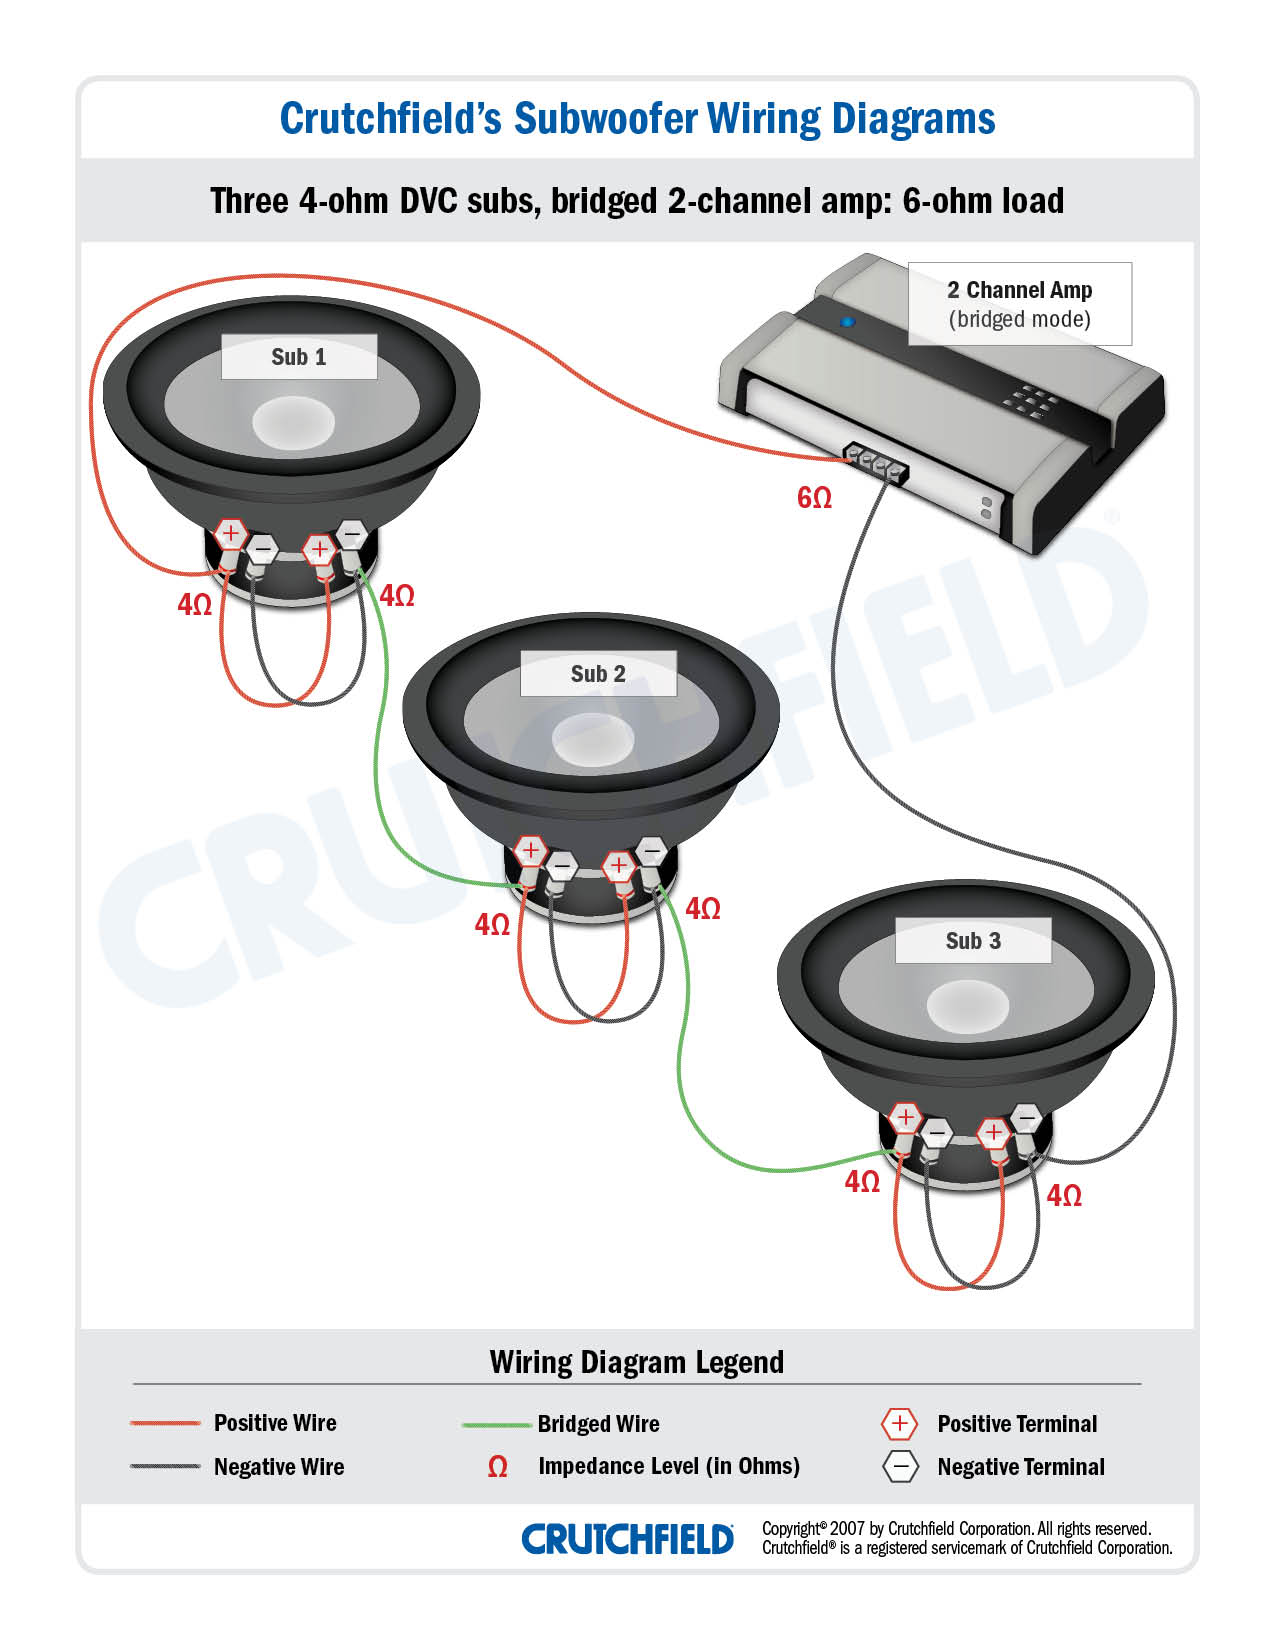 3 DVC 4 ohm 2 ch subwoofer wiring diagrams crutchfield wiring diagrams at aneh.co